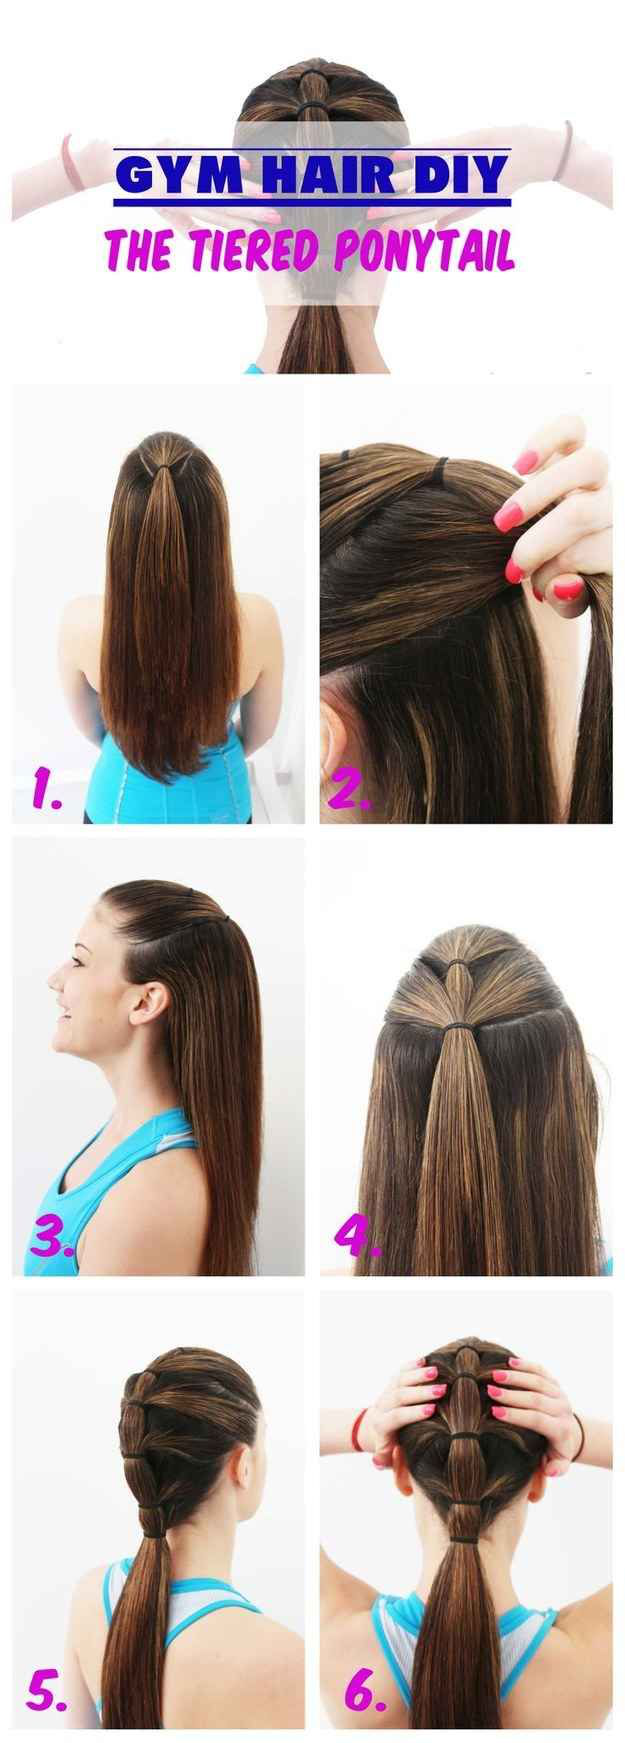 Gym hair tutorial the tiered ponytail peinados pinterest gym